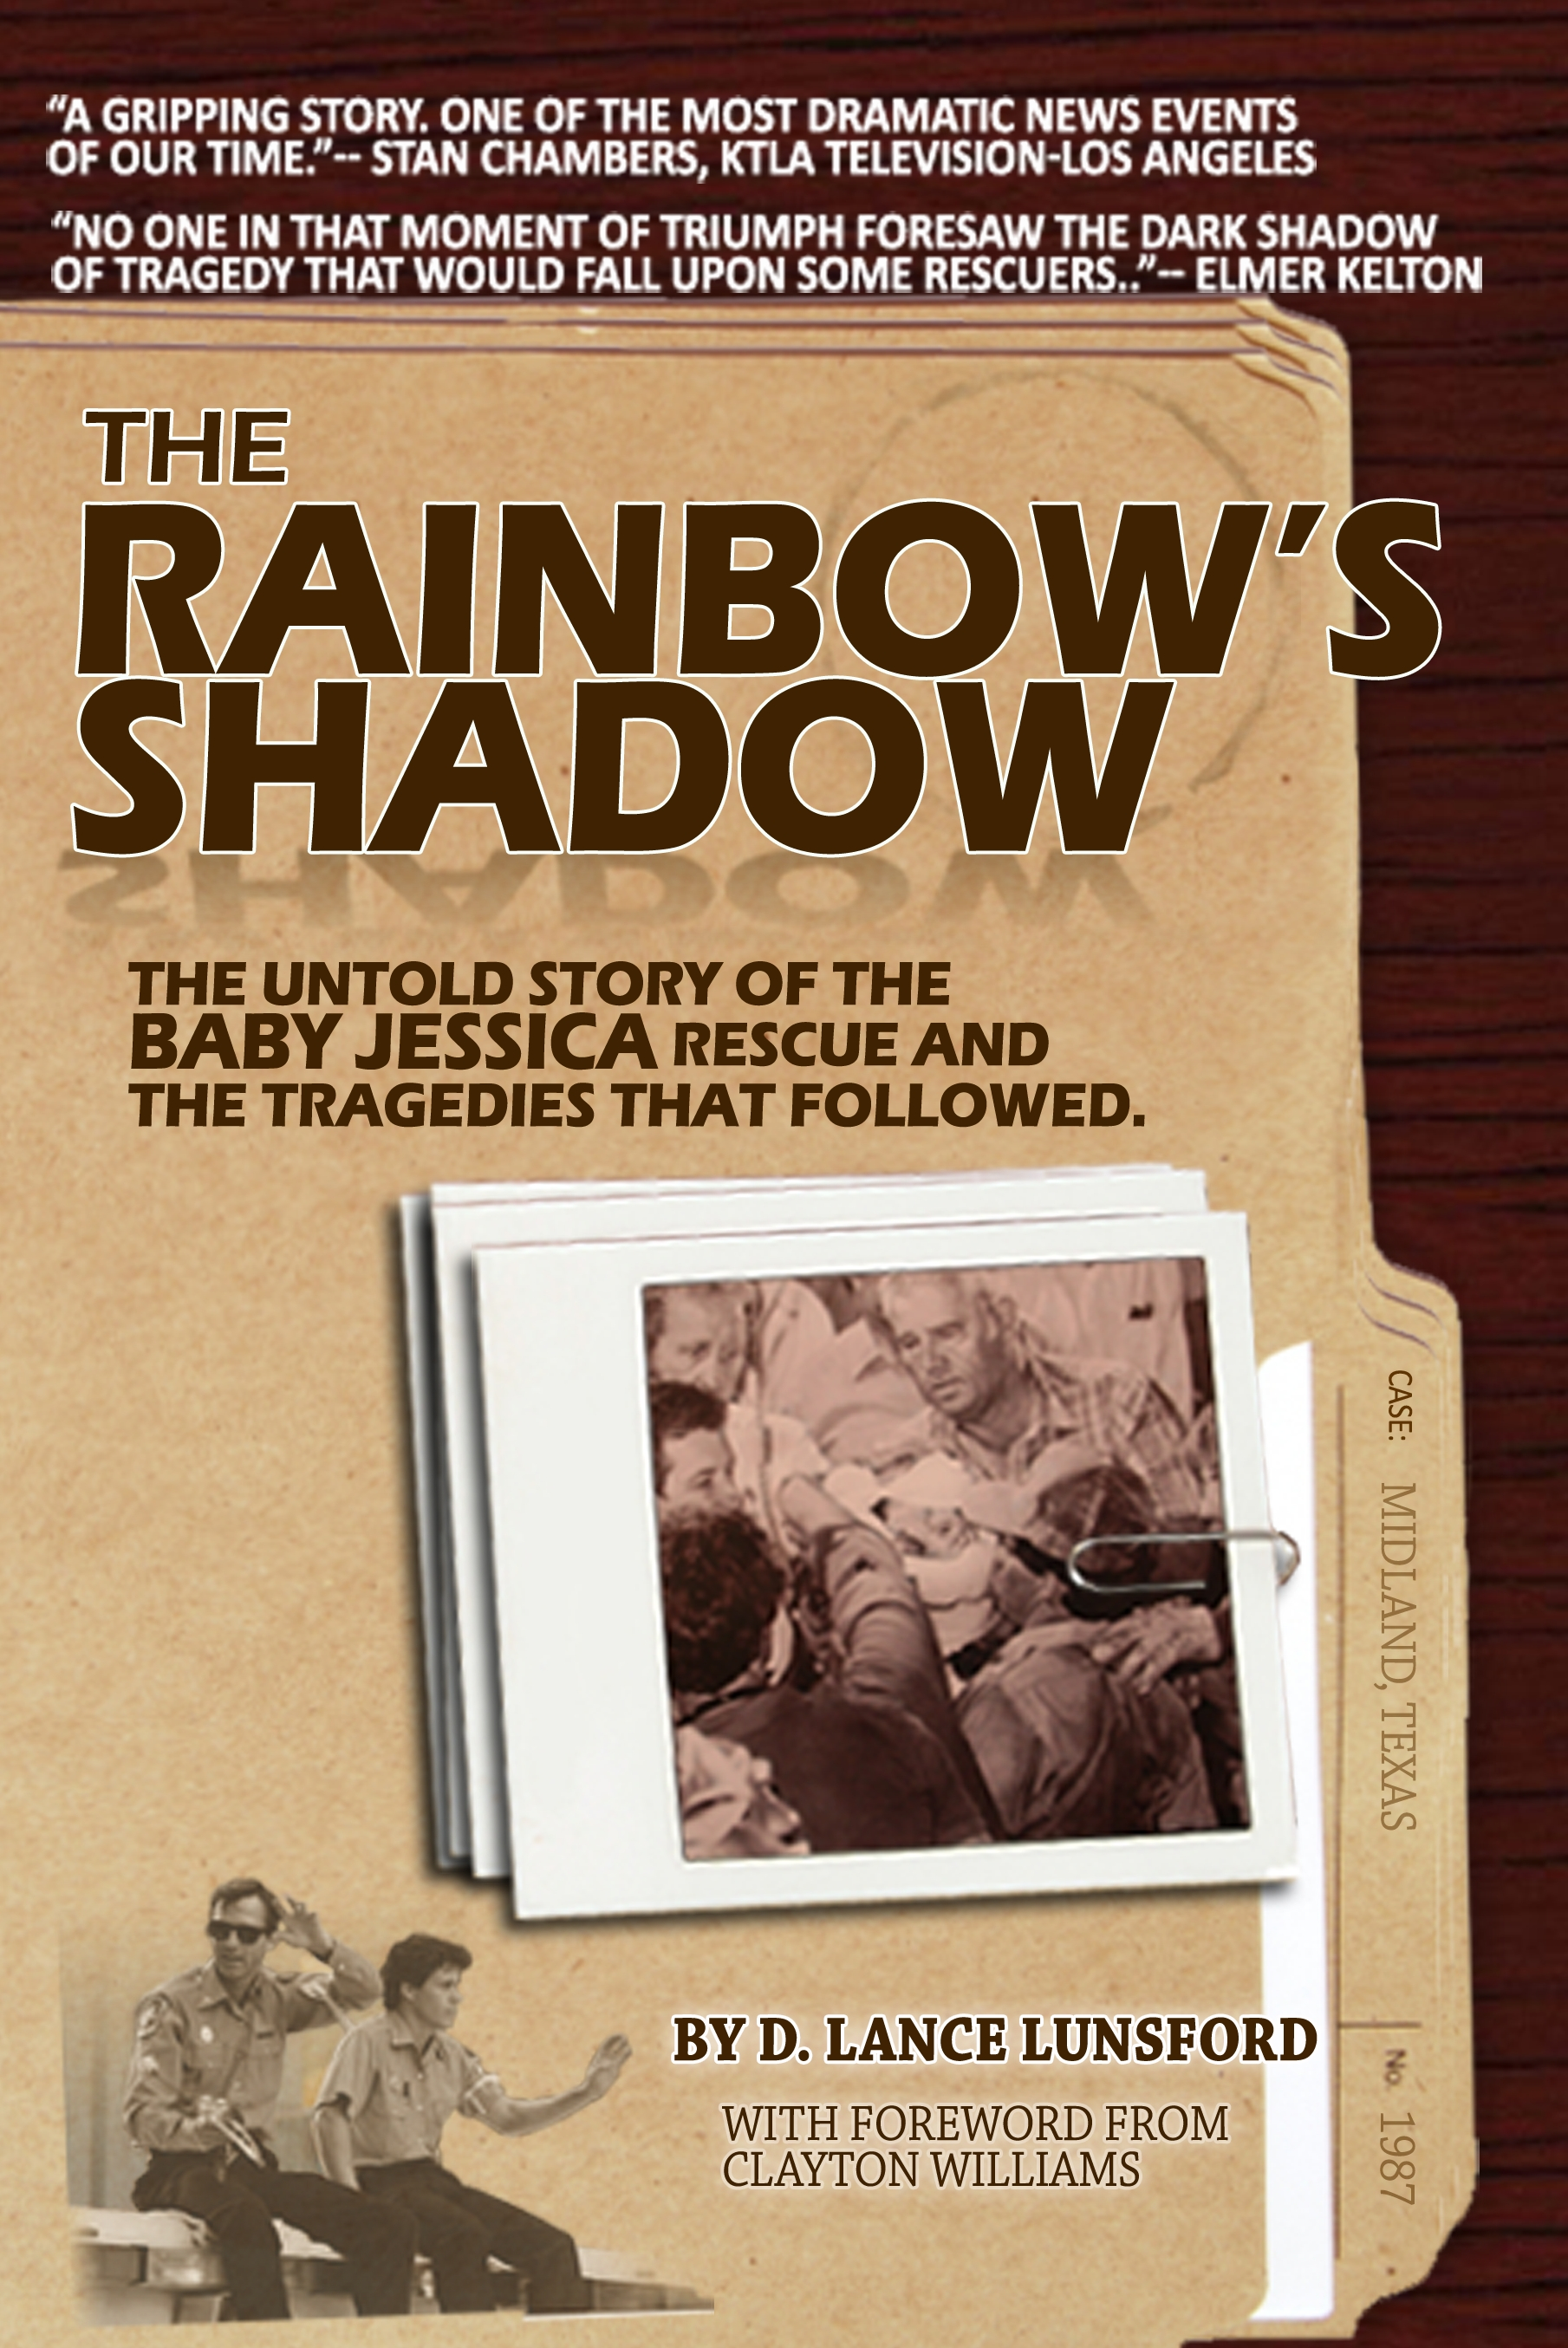 The Rainbow's Shadow: The Untold Story of the Jessica McClure Rescue and the Tragedies That Followed